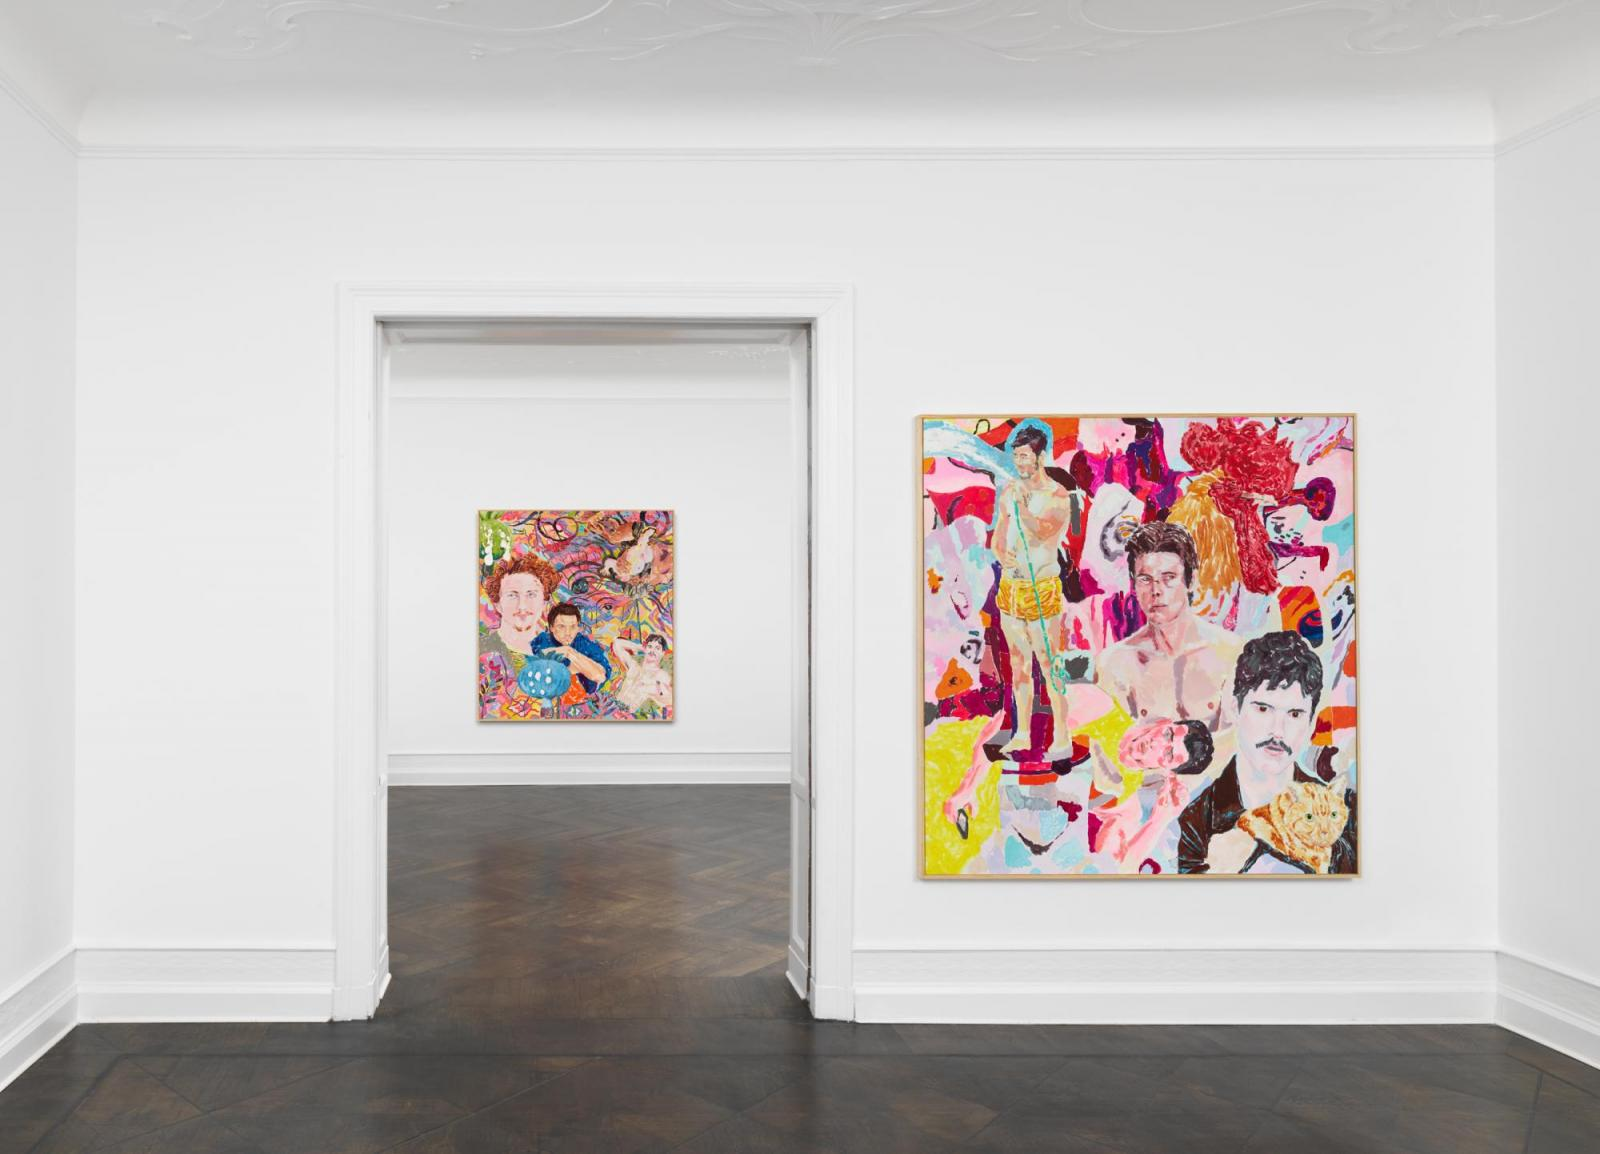 Installation view, Richard Hawkins, Galerie Buchholz, Berlin, 2020